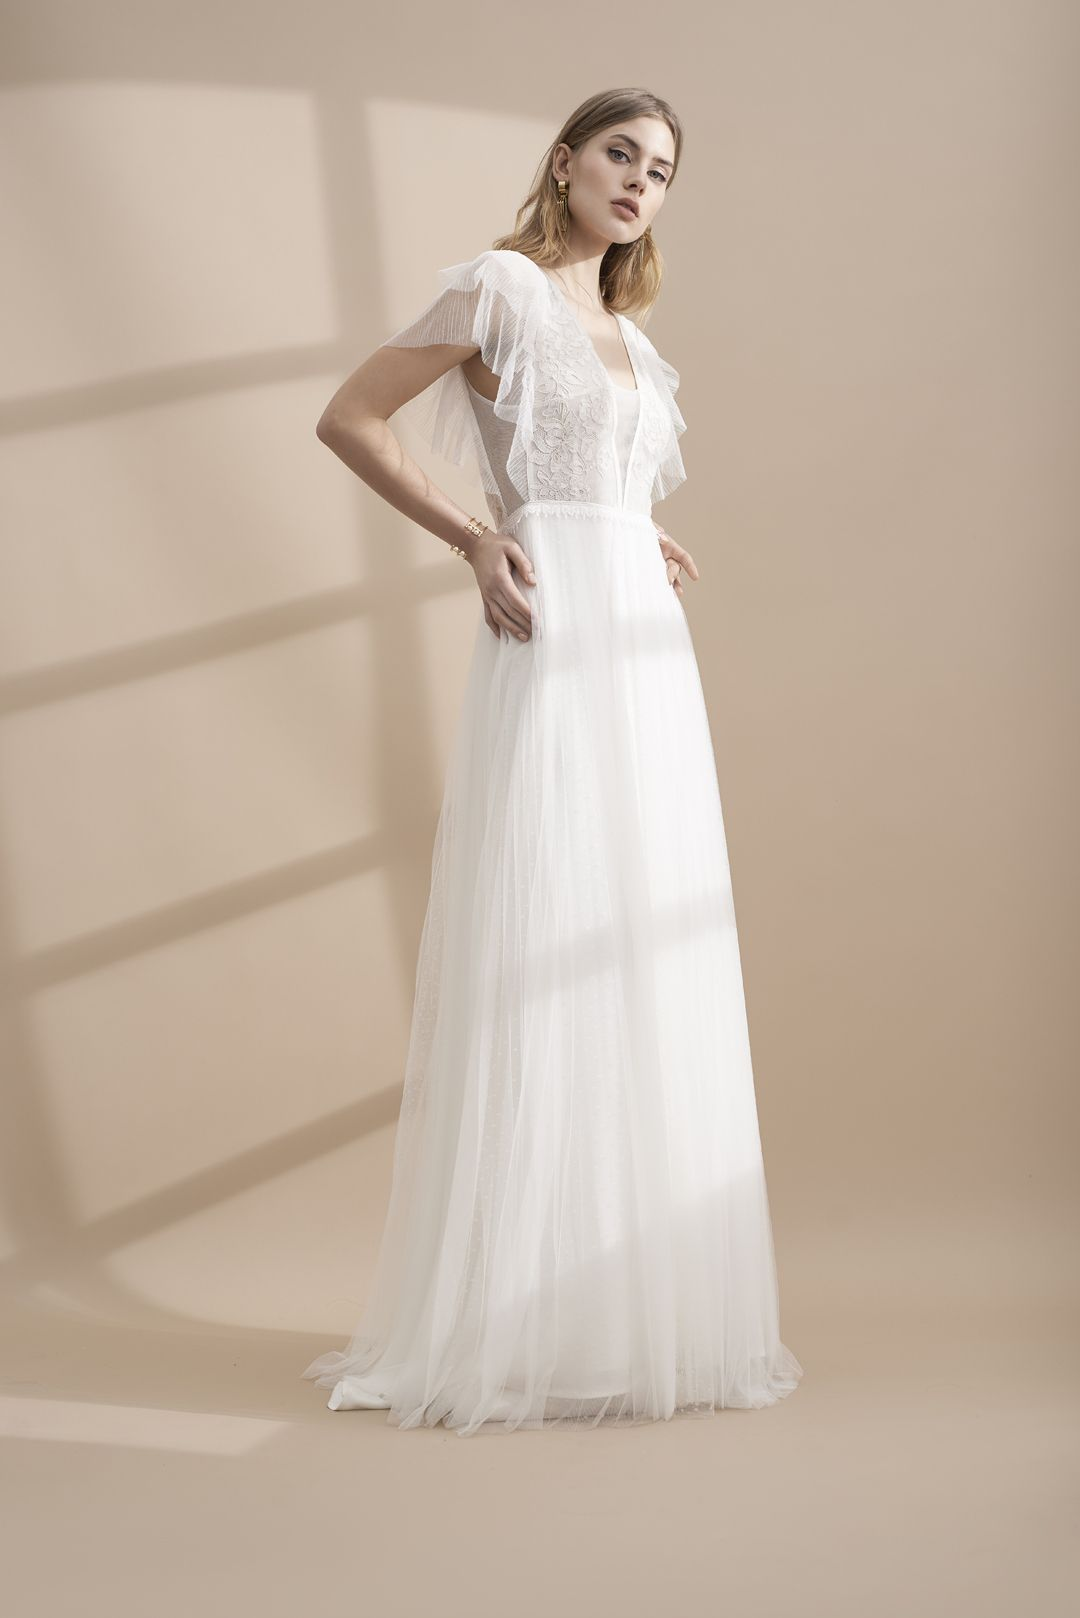 Rembo Styling 16  Sewing wedding dress, Wedding dresses